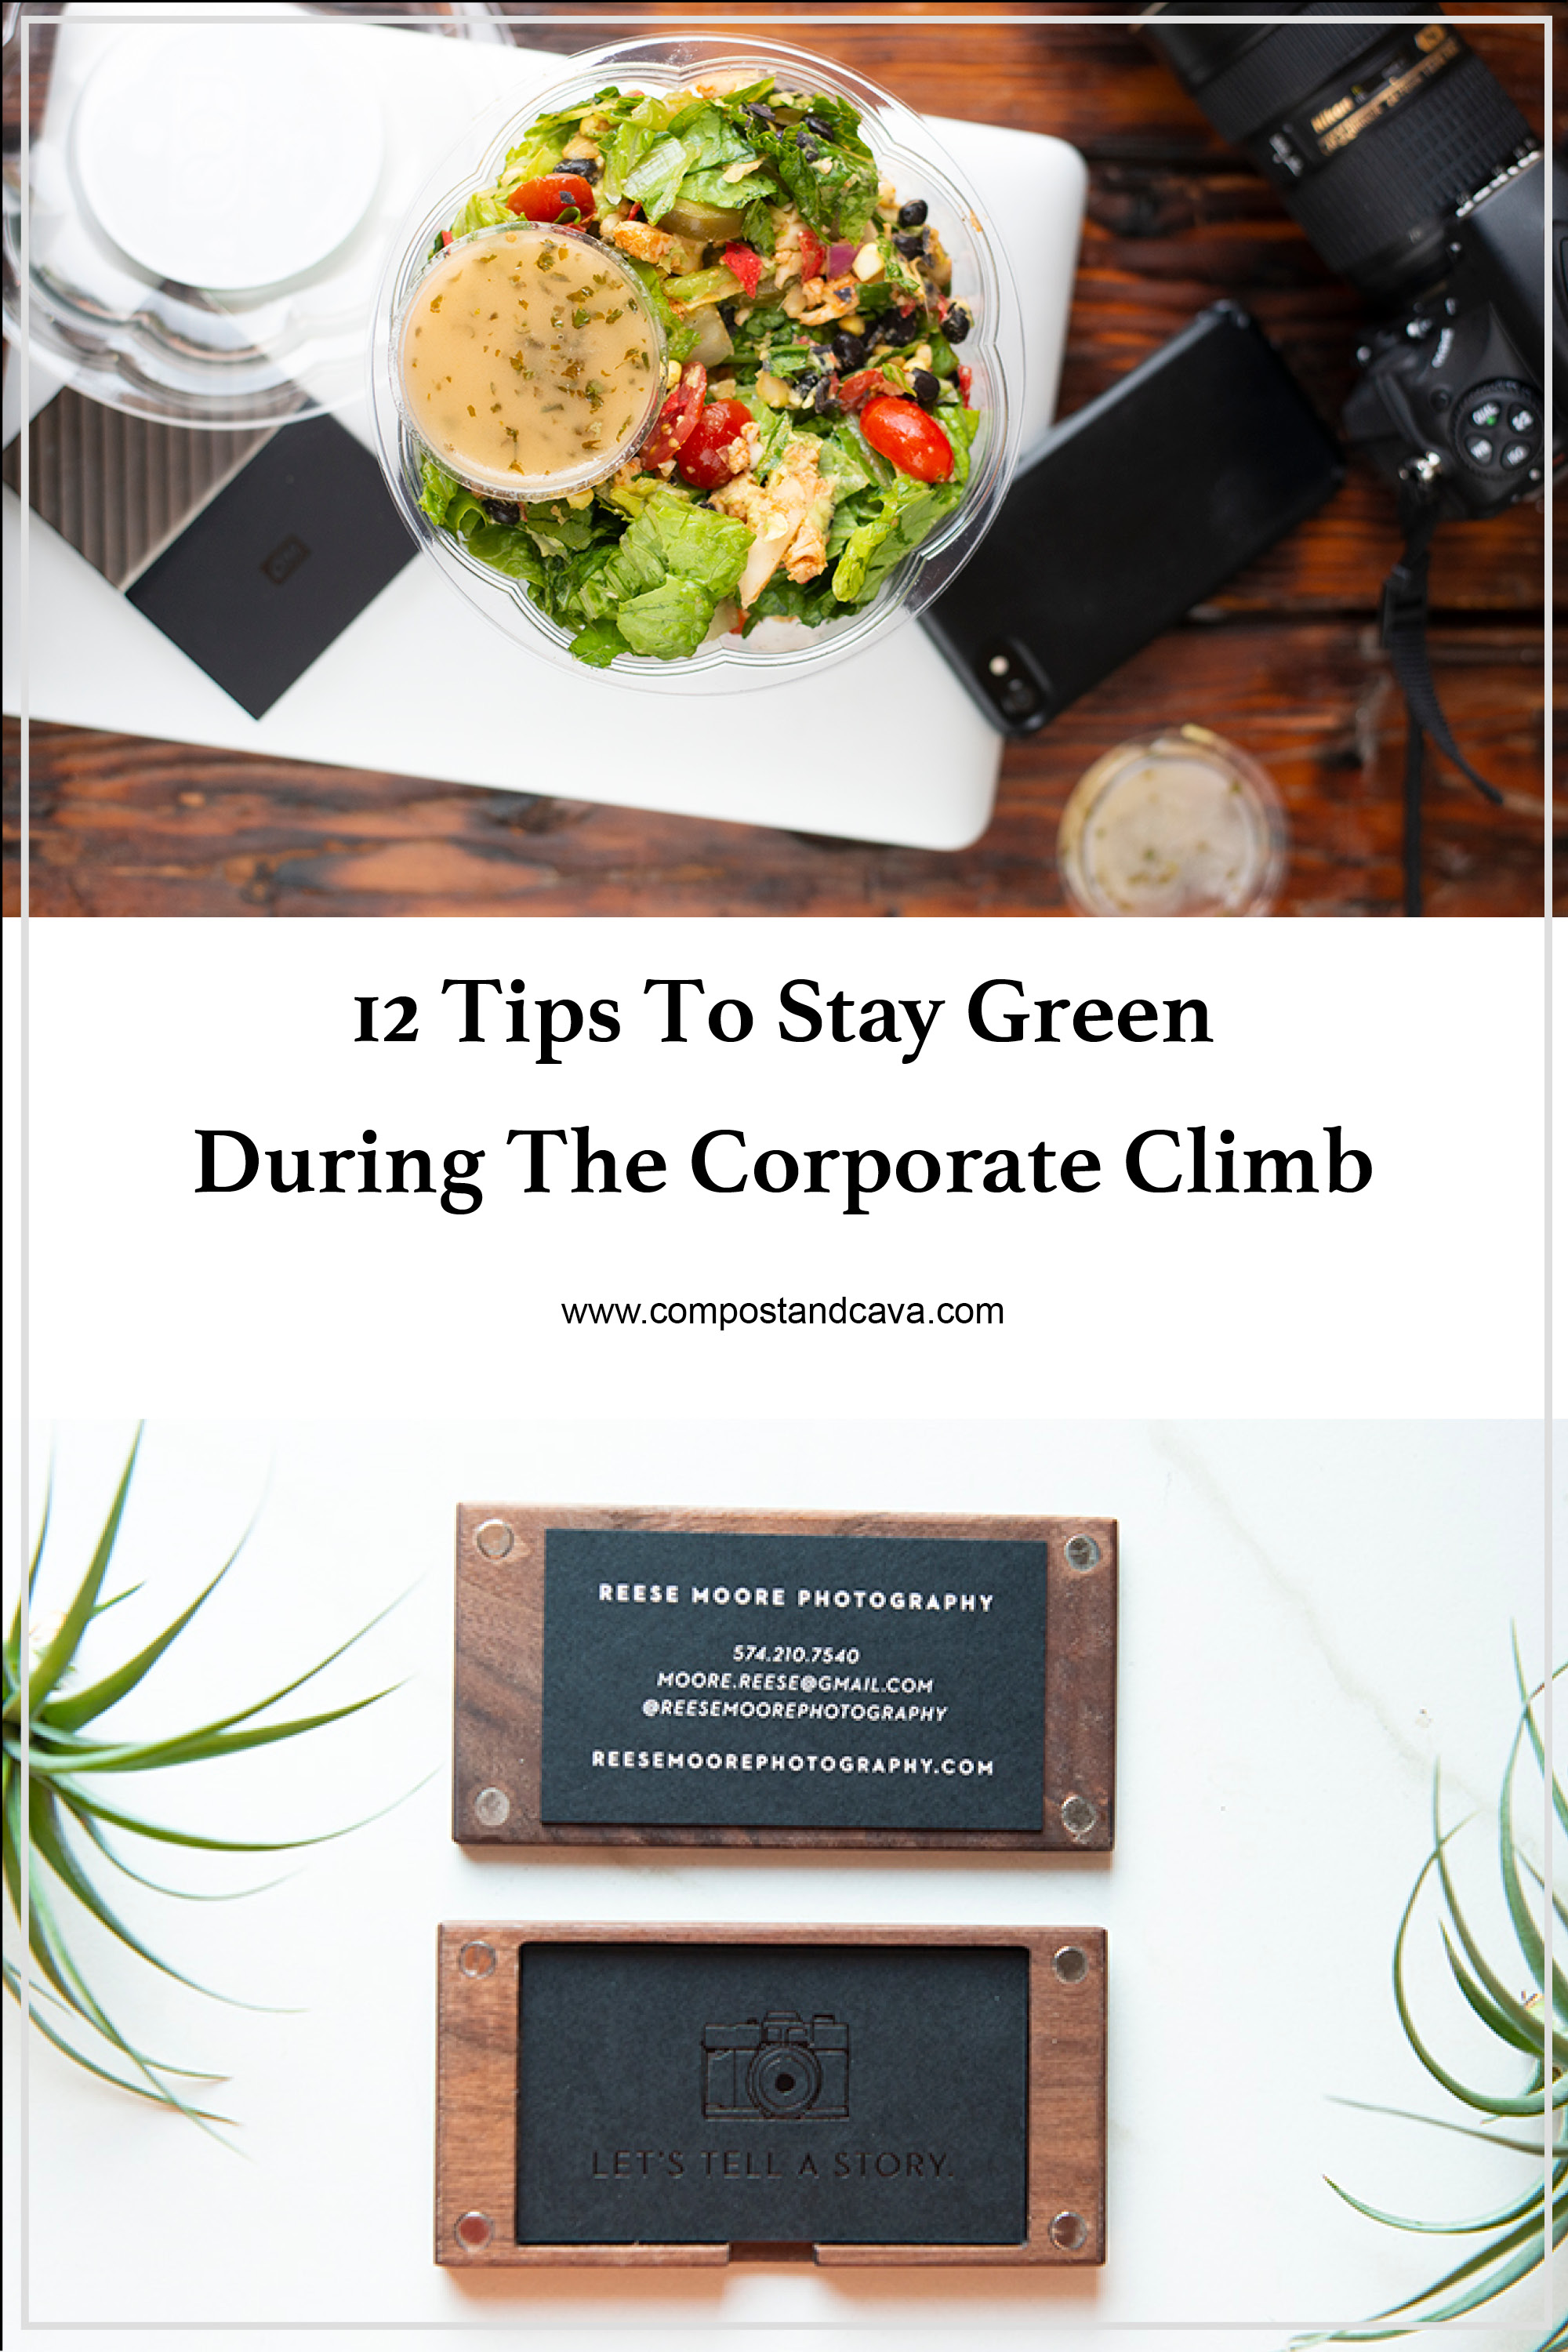 12 Tips To Stay Green During The Corporate Climb